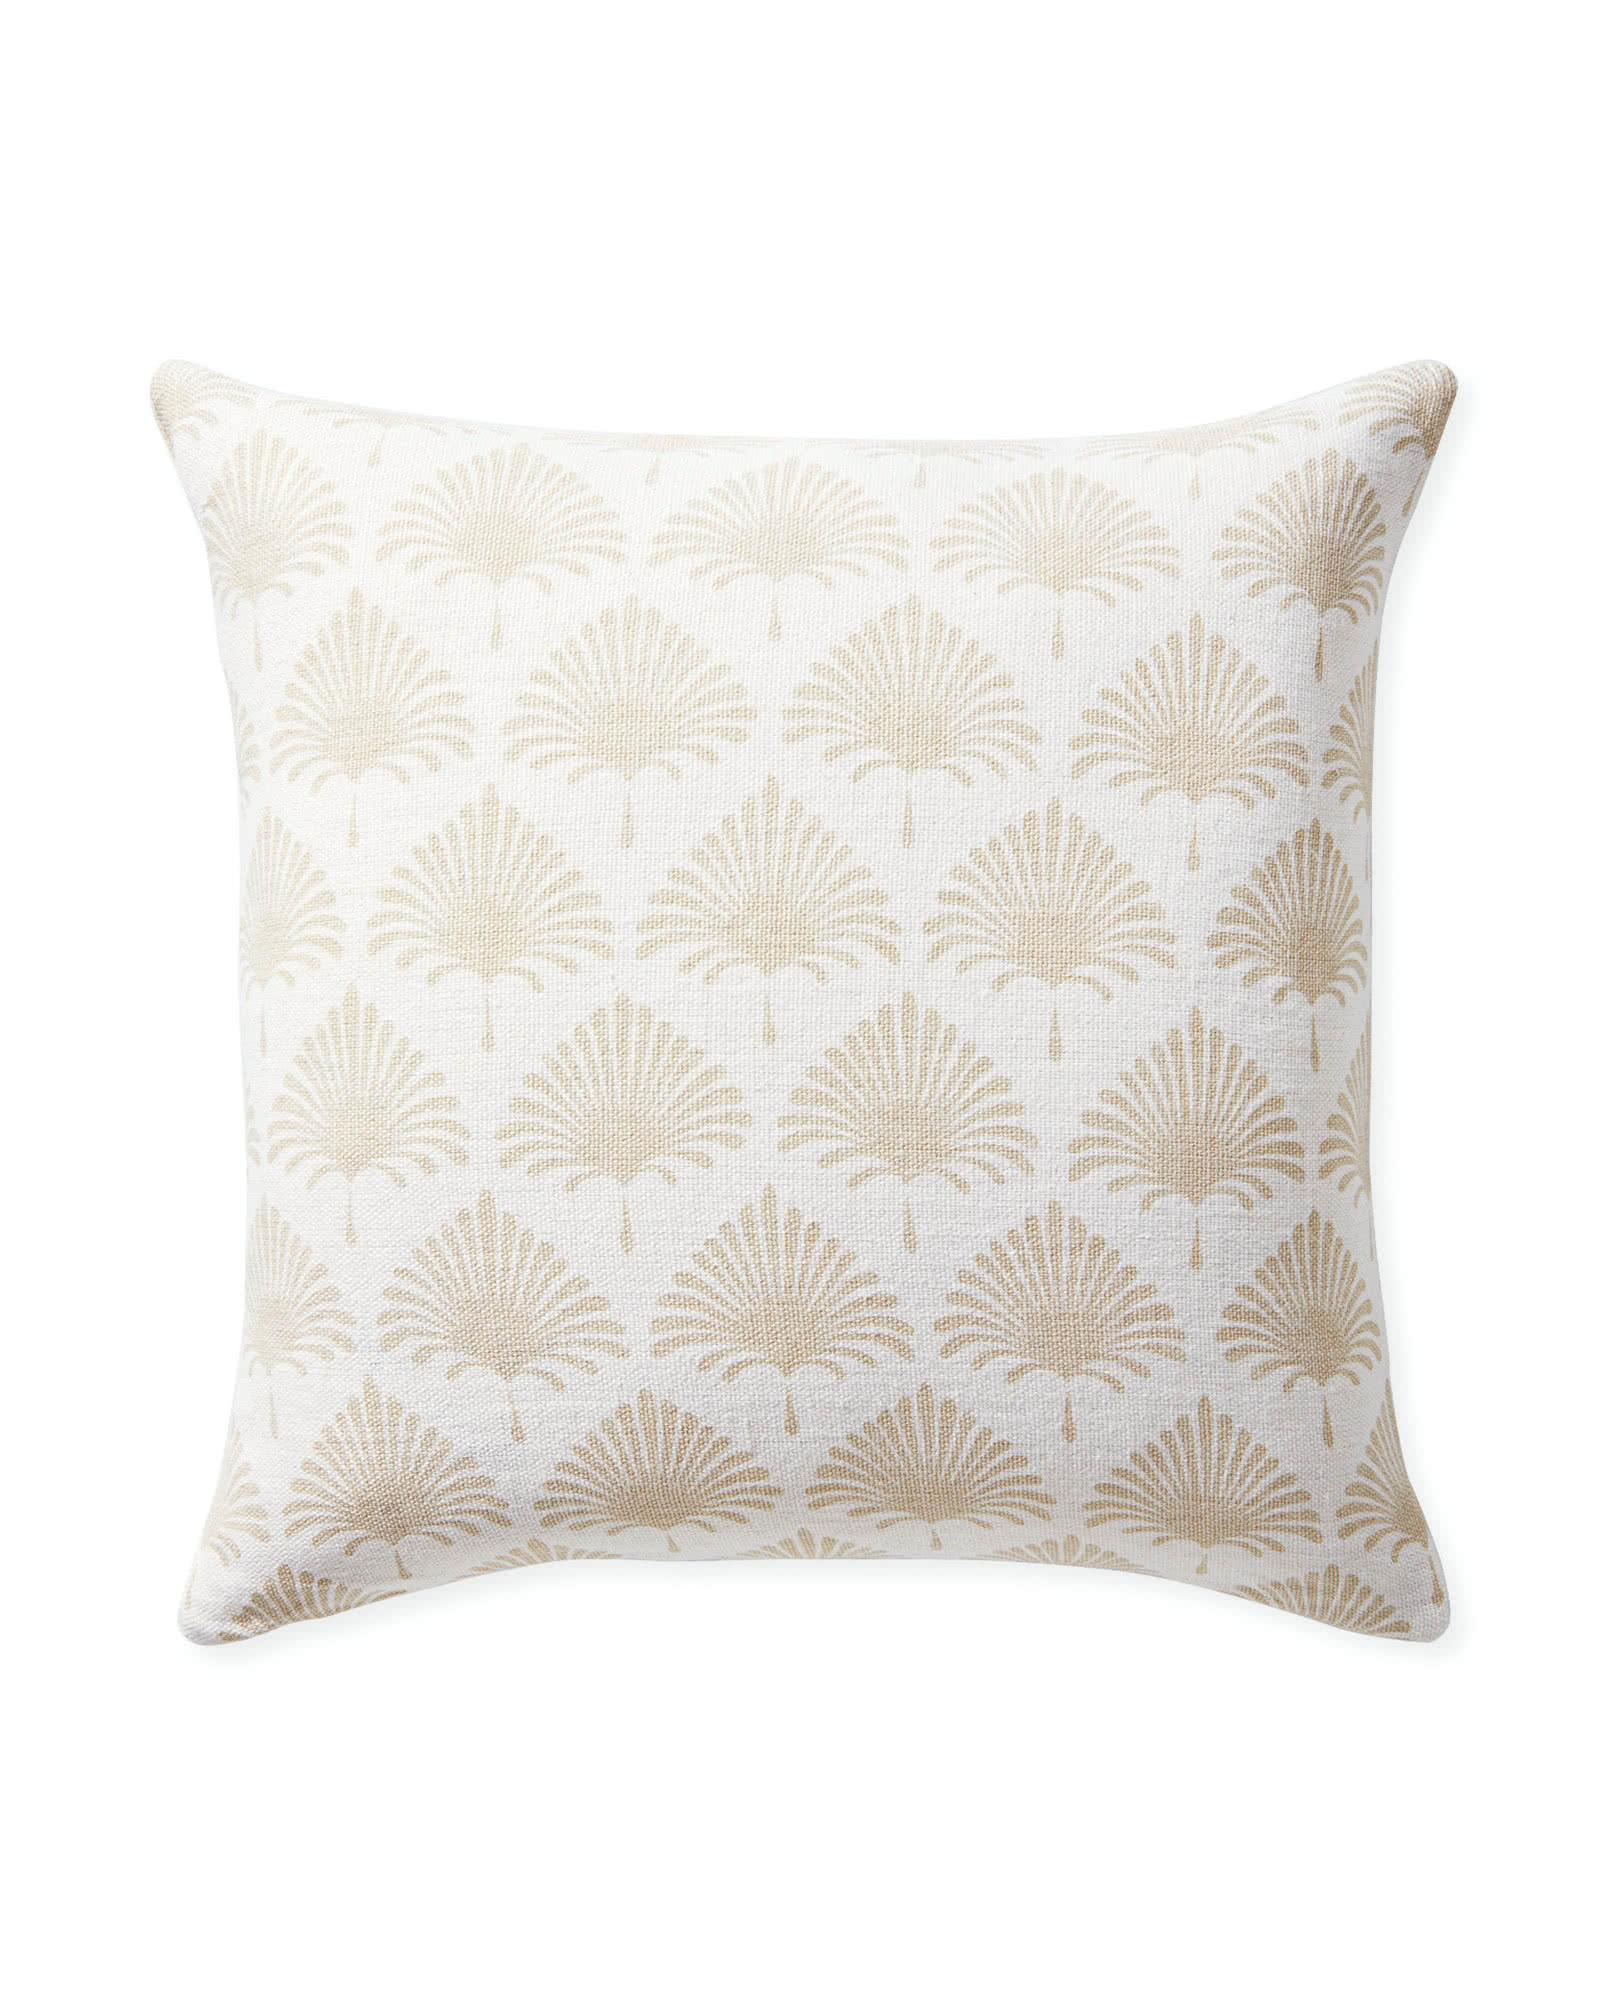 Paloma Pillow Cover, Sand